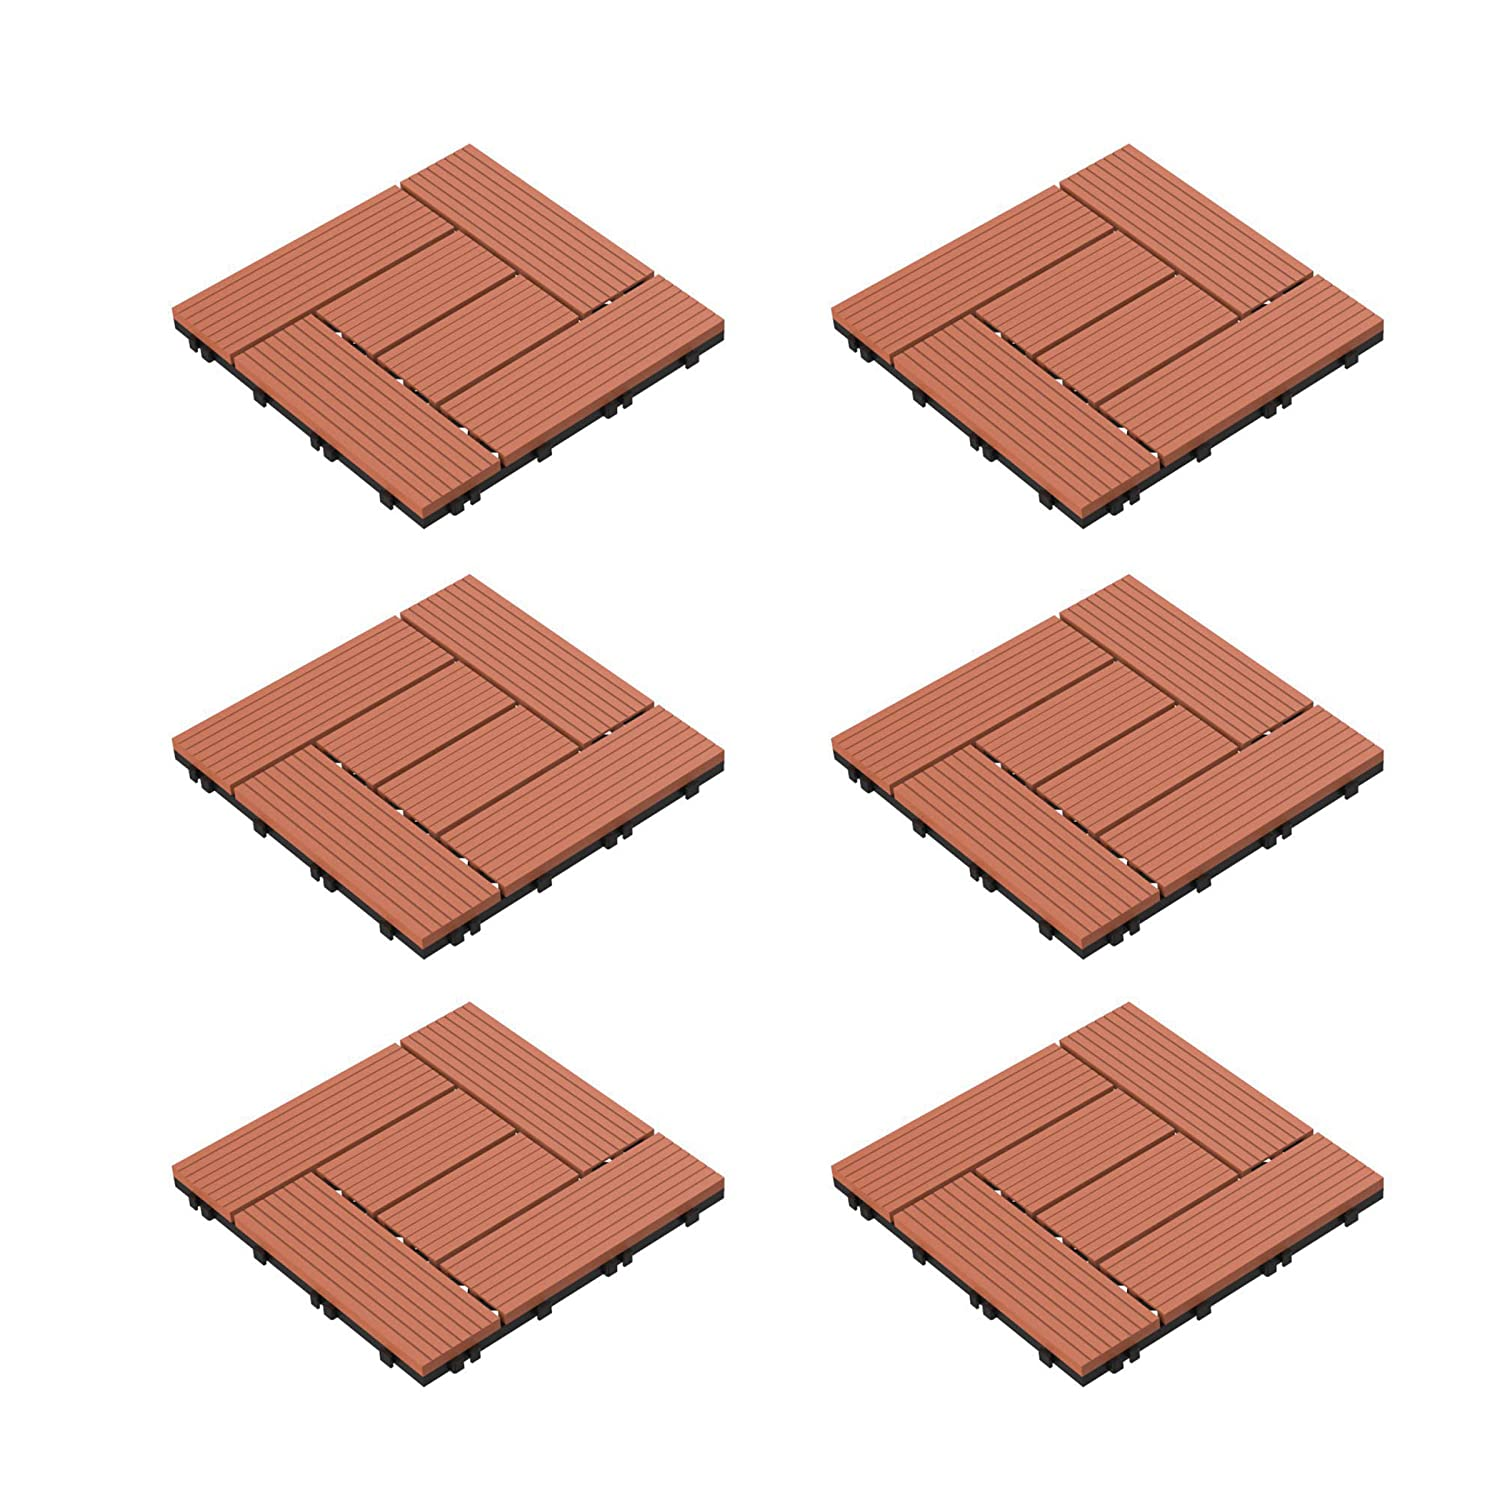 Pure Garden 50-LG1190 Patio and Deck Tiles – Interlocking Criss-Cross Pattern Outdoor Flooring Weather and Slip Resistant Square (Terra Cotta Color 6 Pcs),